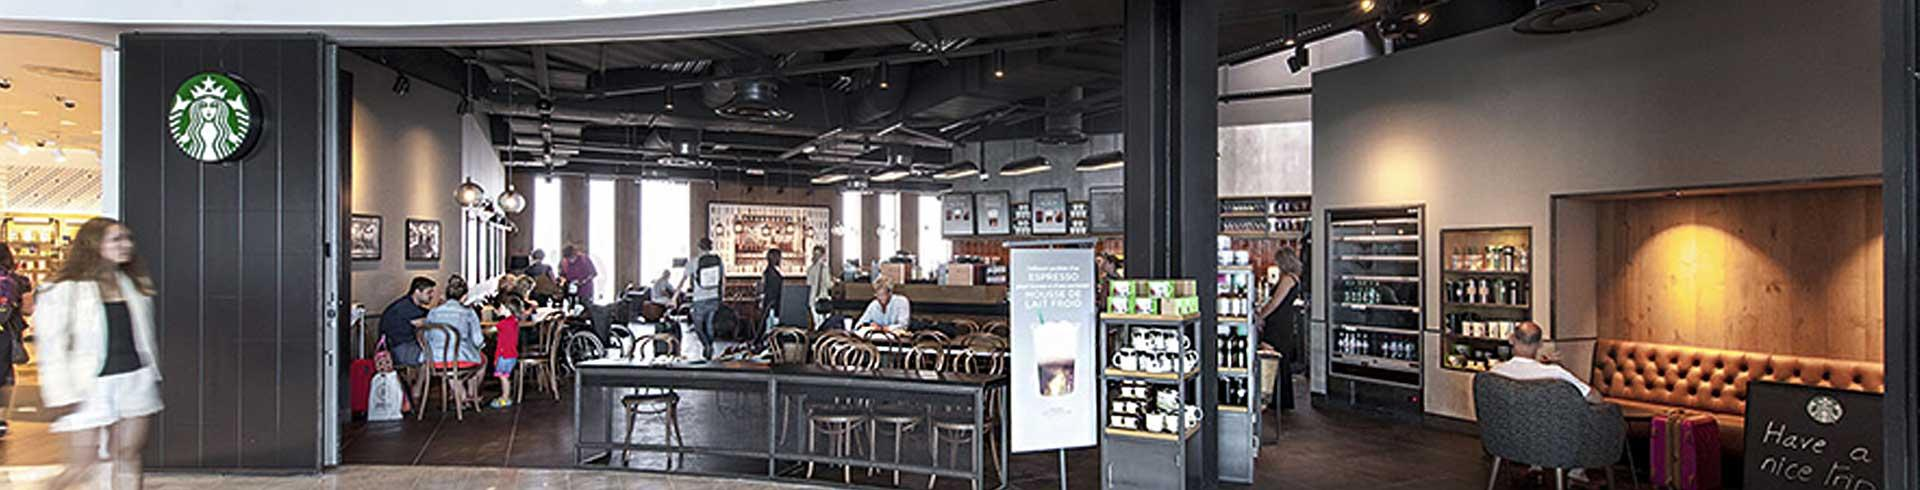 profit maximization starbucks cafe Published: wed, 03 jan 2018 starbucks corporation is a mulitinational coffee chain store first setup in seattle, washington, united states it is the biggest coffeehouse through out the world with more than 17000 restaurants in 55 countries including australia, u k, new zealand, canada, and brazil.